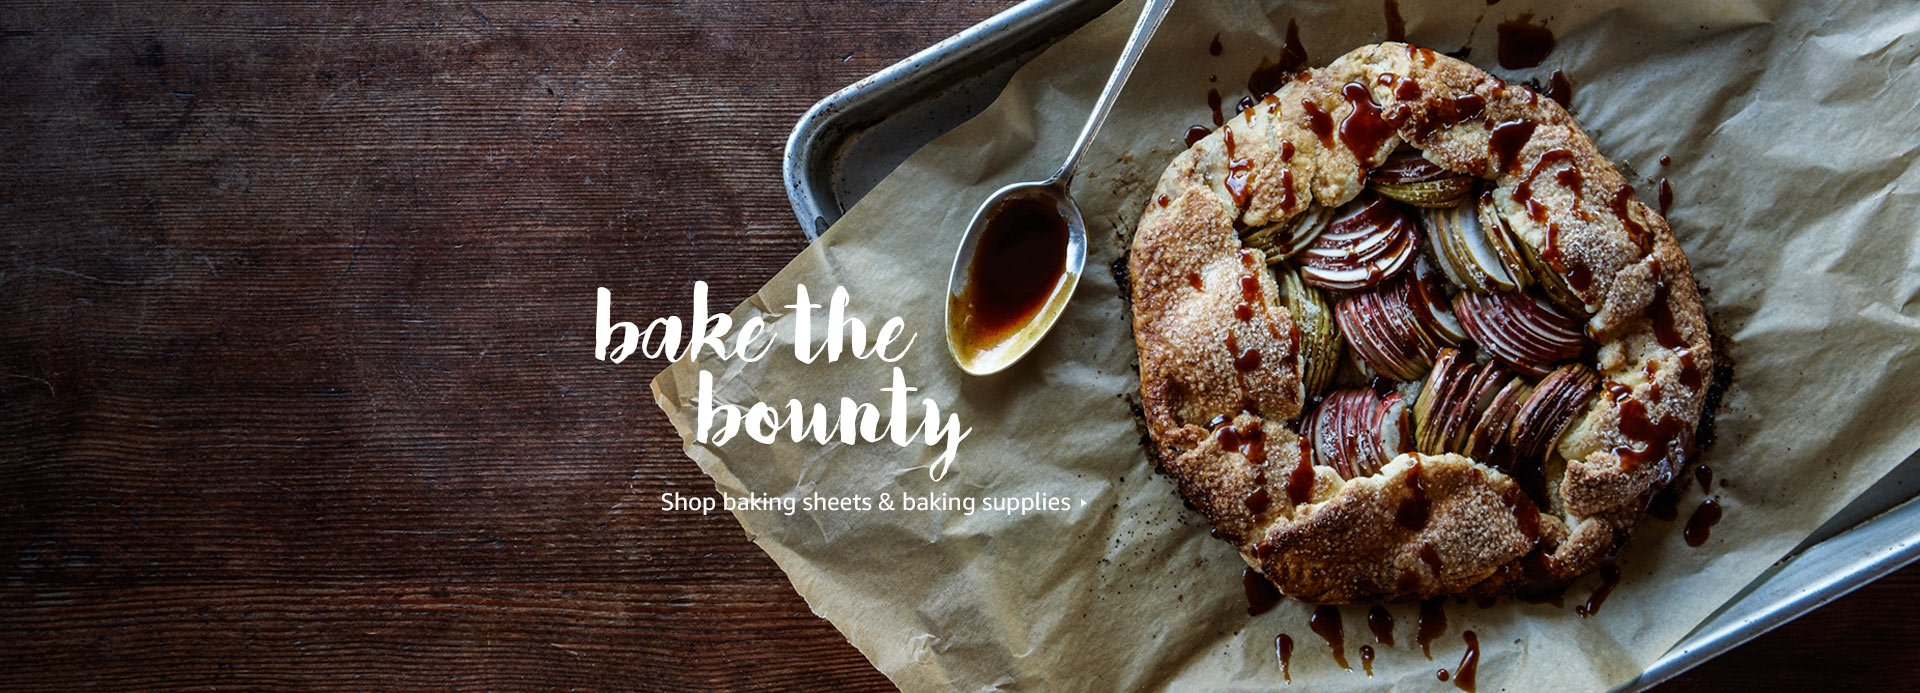 Bake the Bounty, Kitchen & Dining